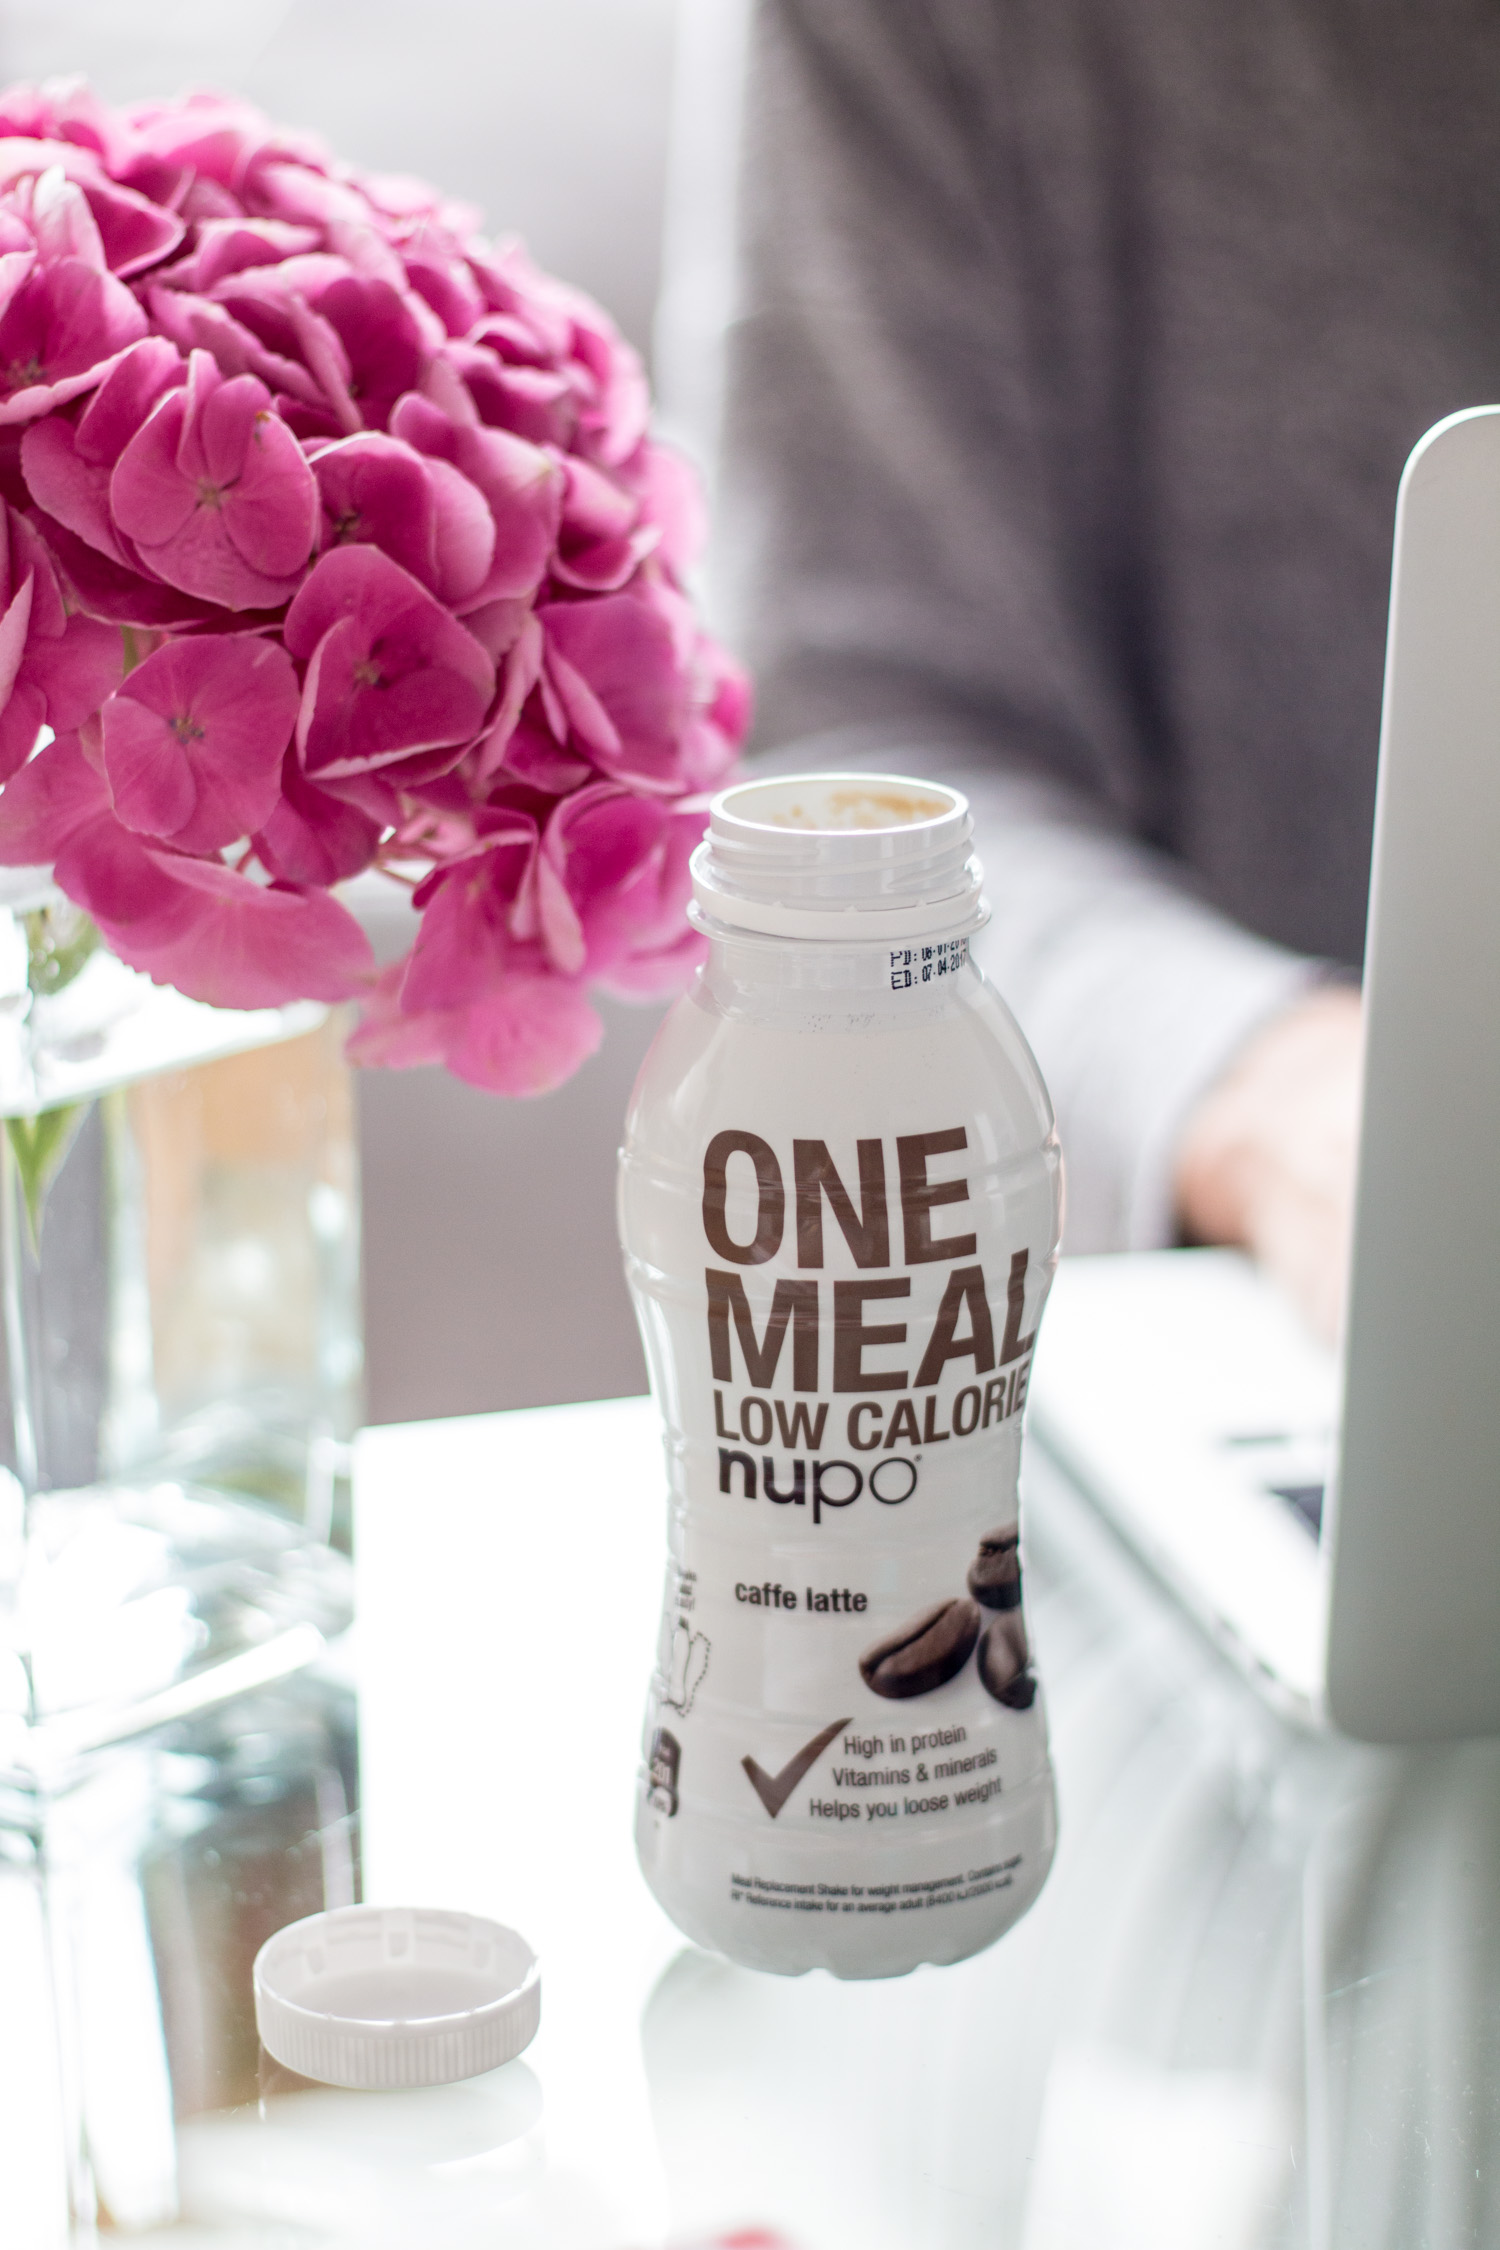 Low Fat Meals With Nupo | The Daily Dose